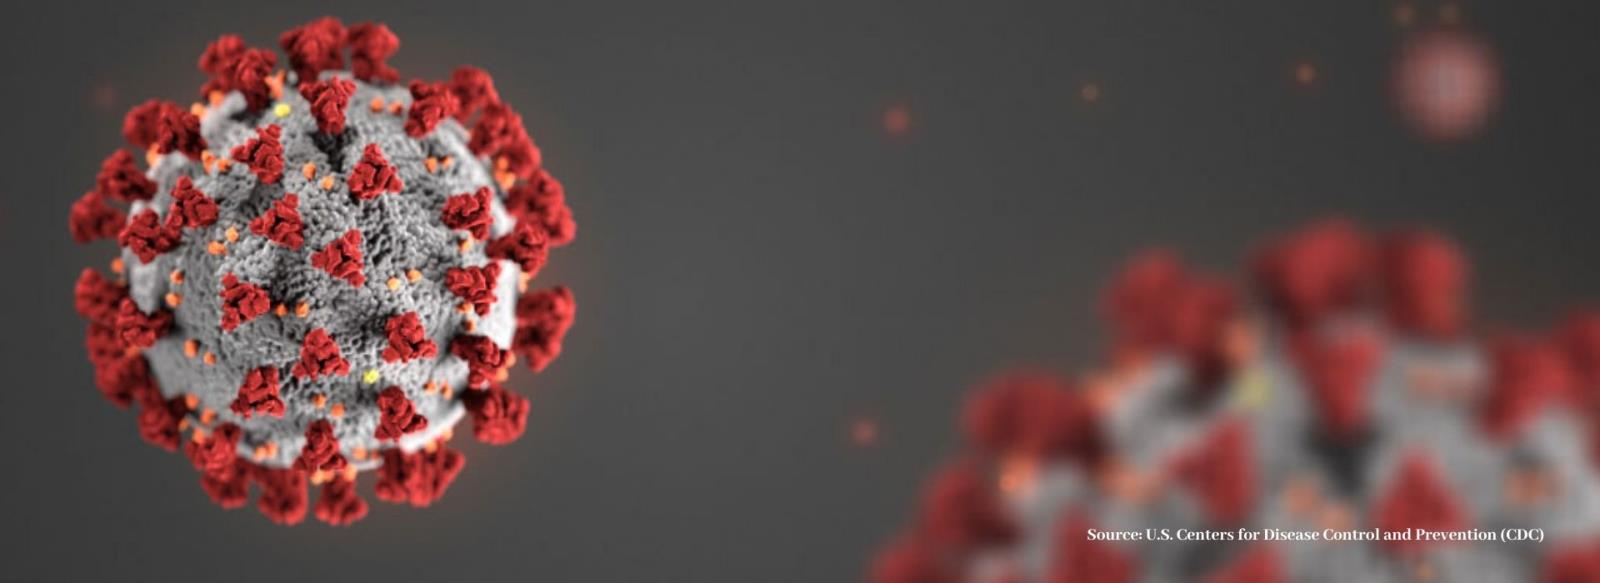 Coronavirus Banner from U.S. Centers for Disease Control